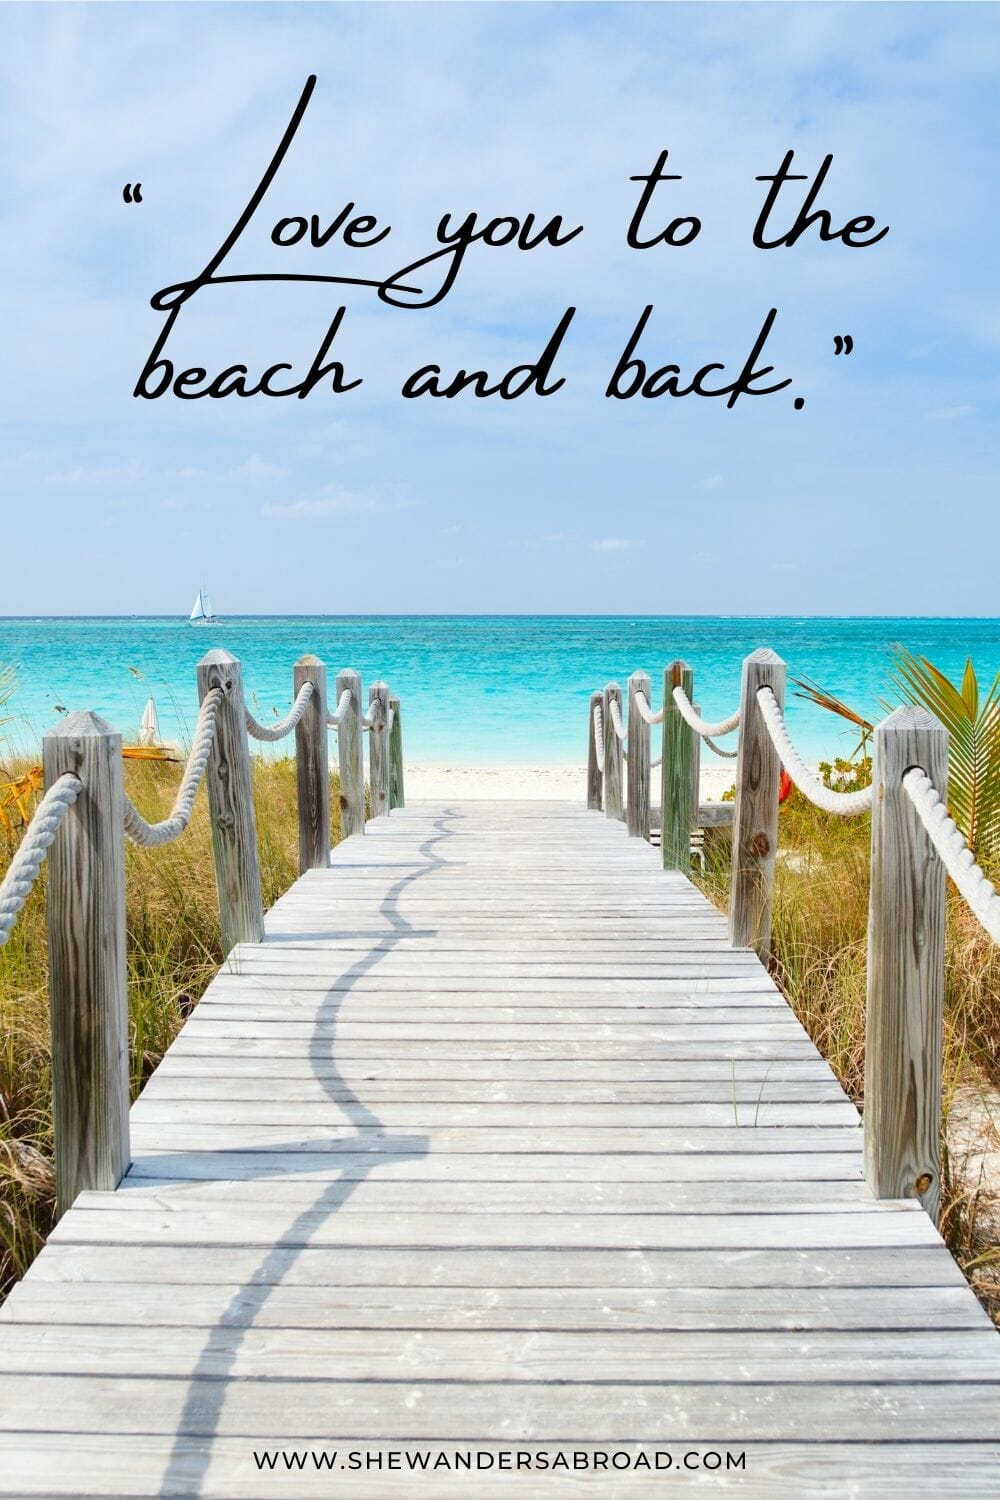 Romantic beach love quotes